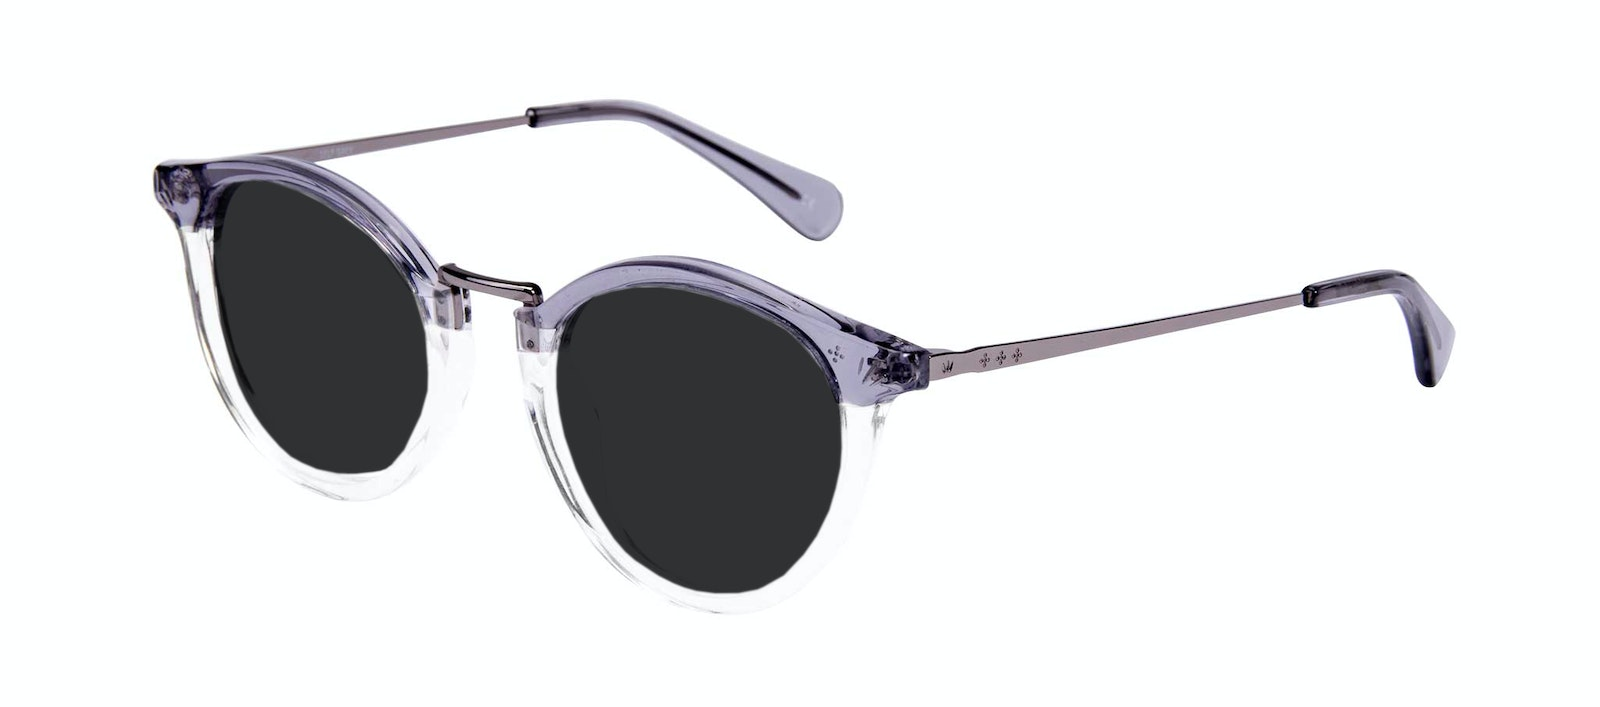 Affordable Fashion Glasses Round Sunglasses Women Self Grey Tilt